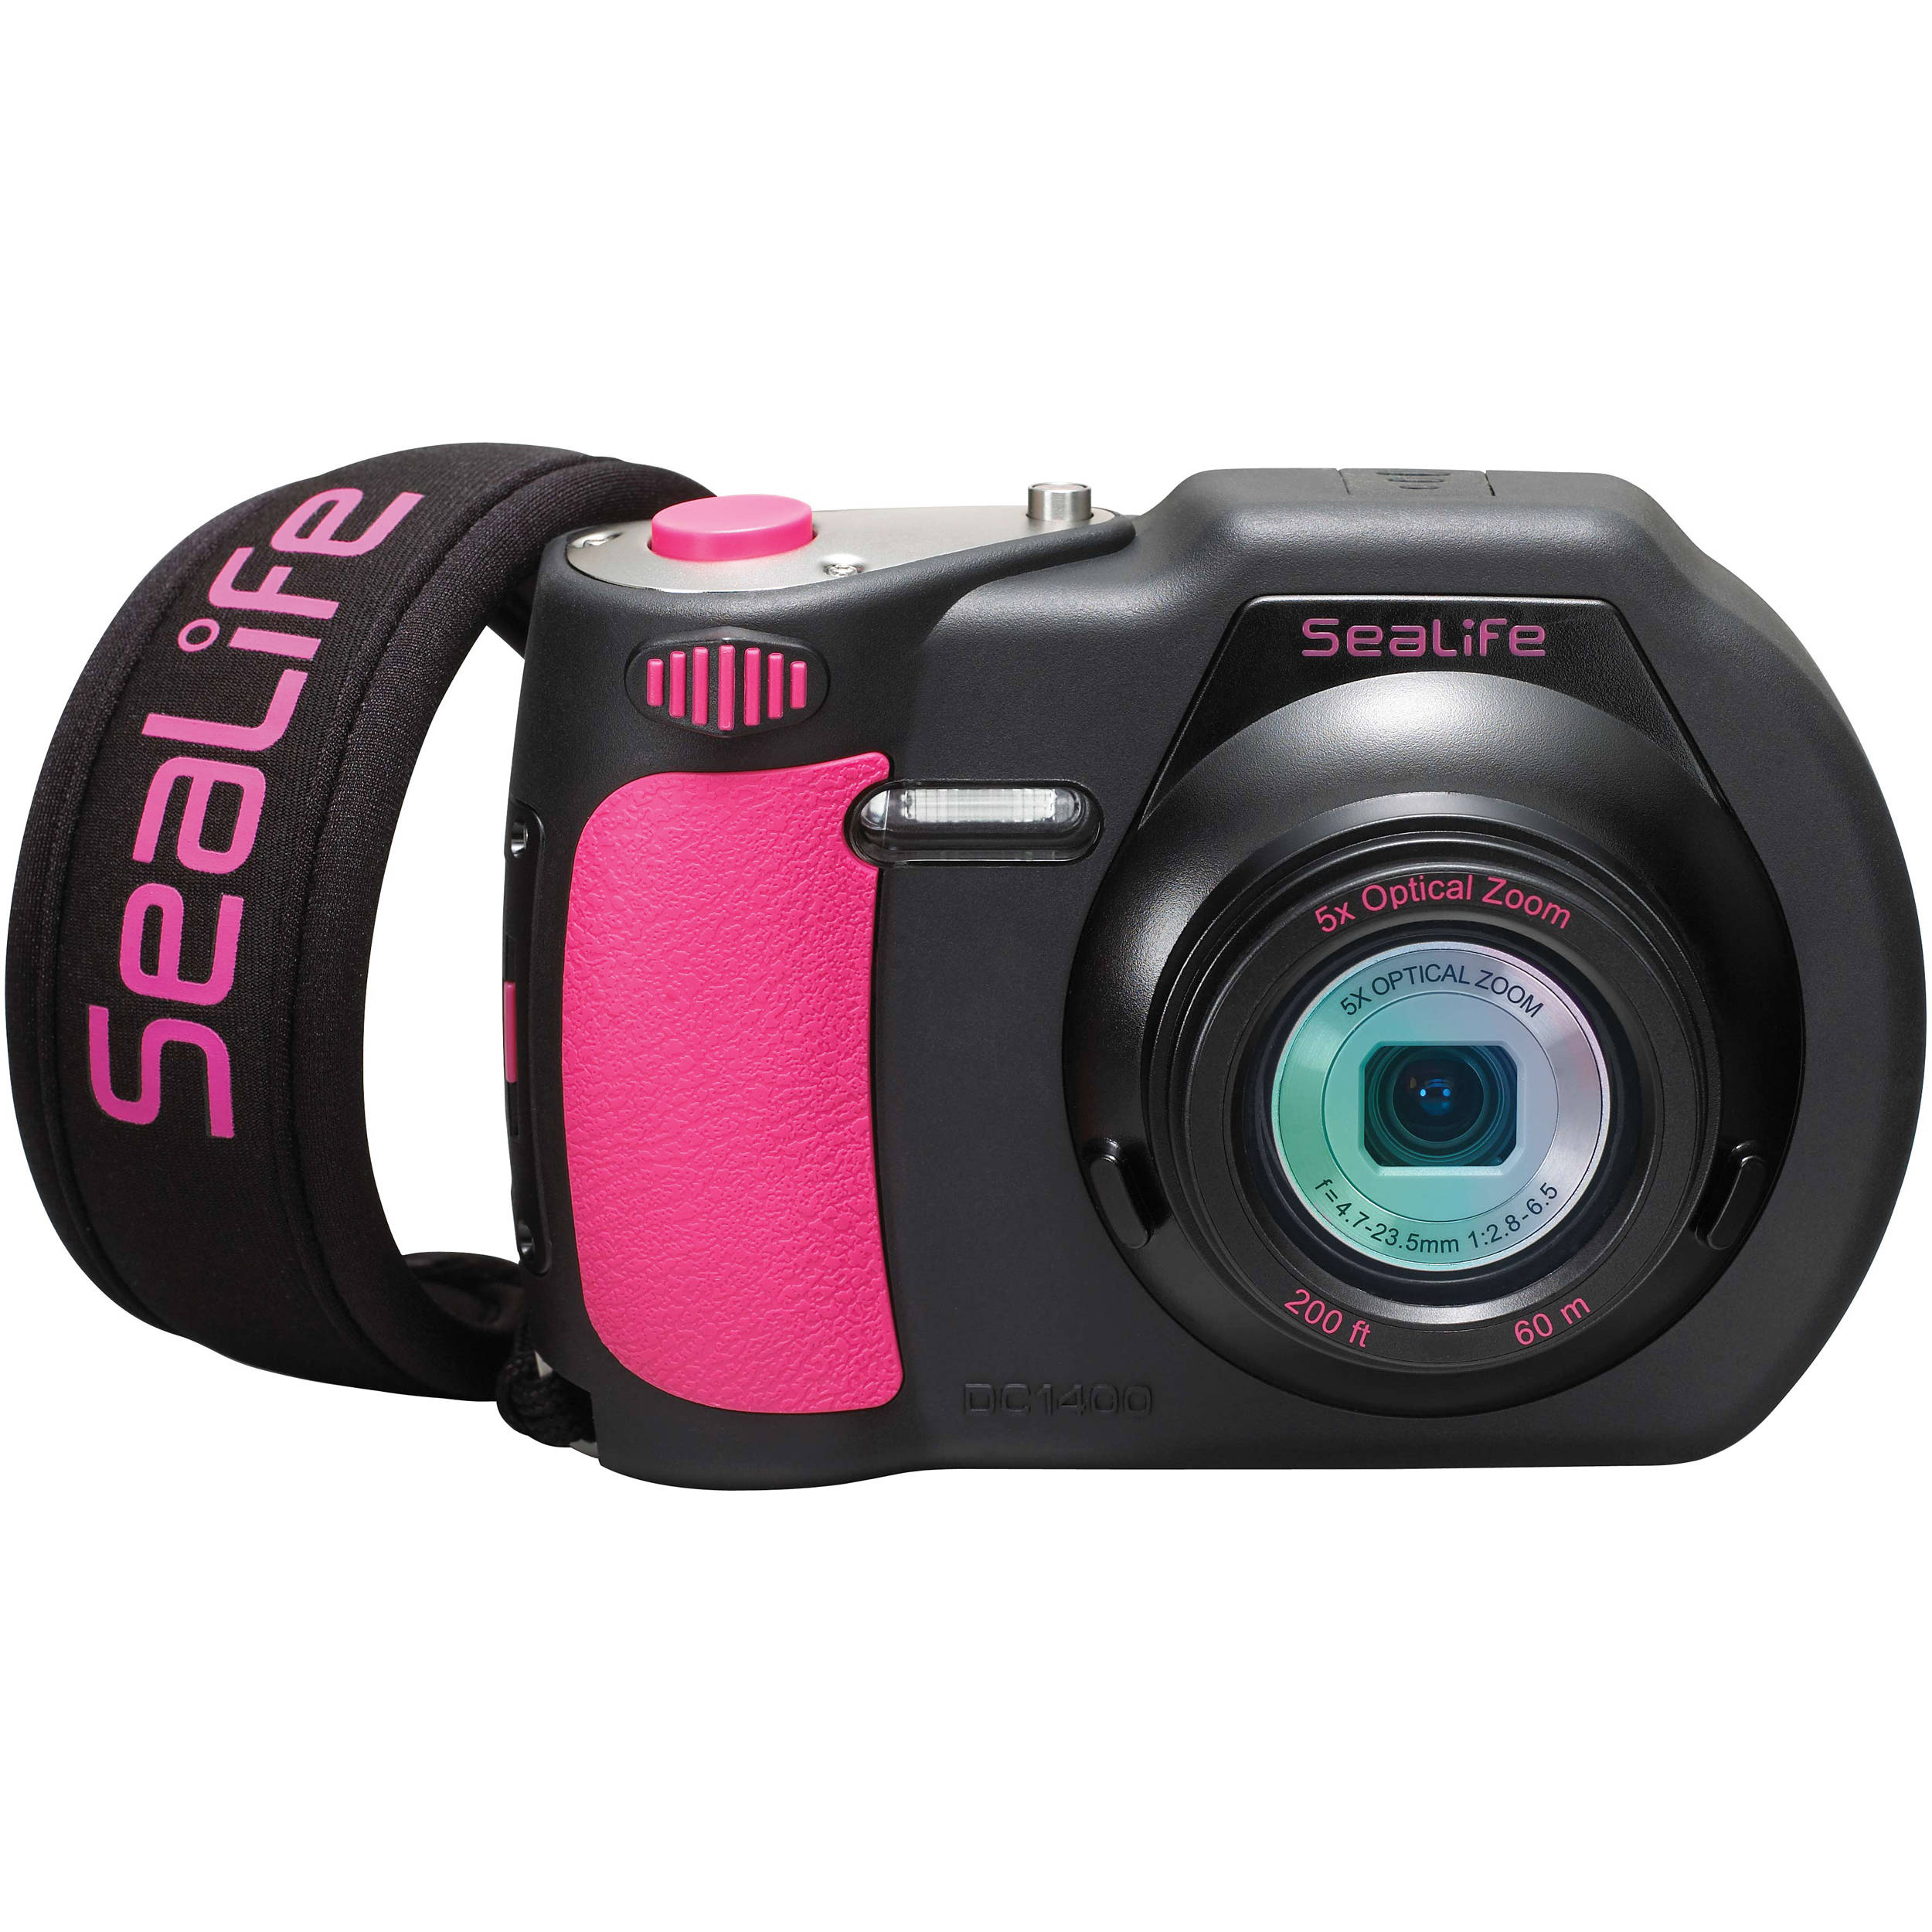 SeaLife DC1400 Underwater Digital Camera (Pink / Black) SL720P